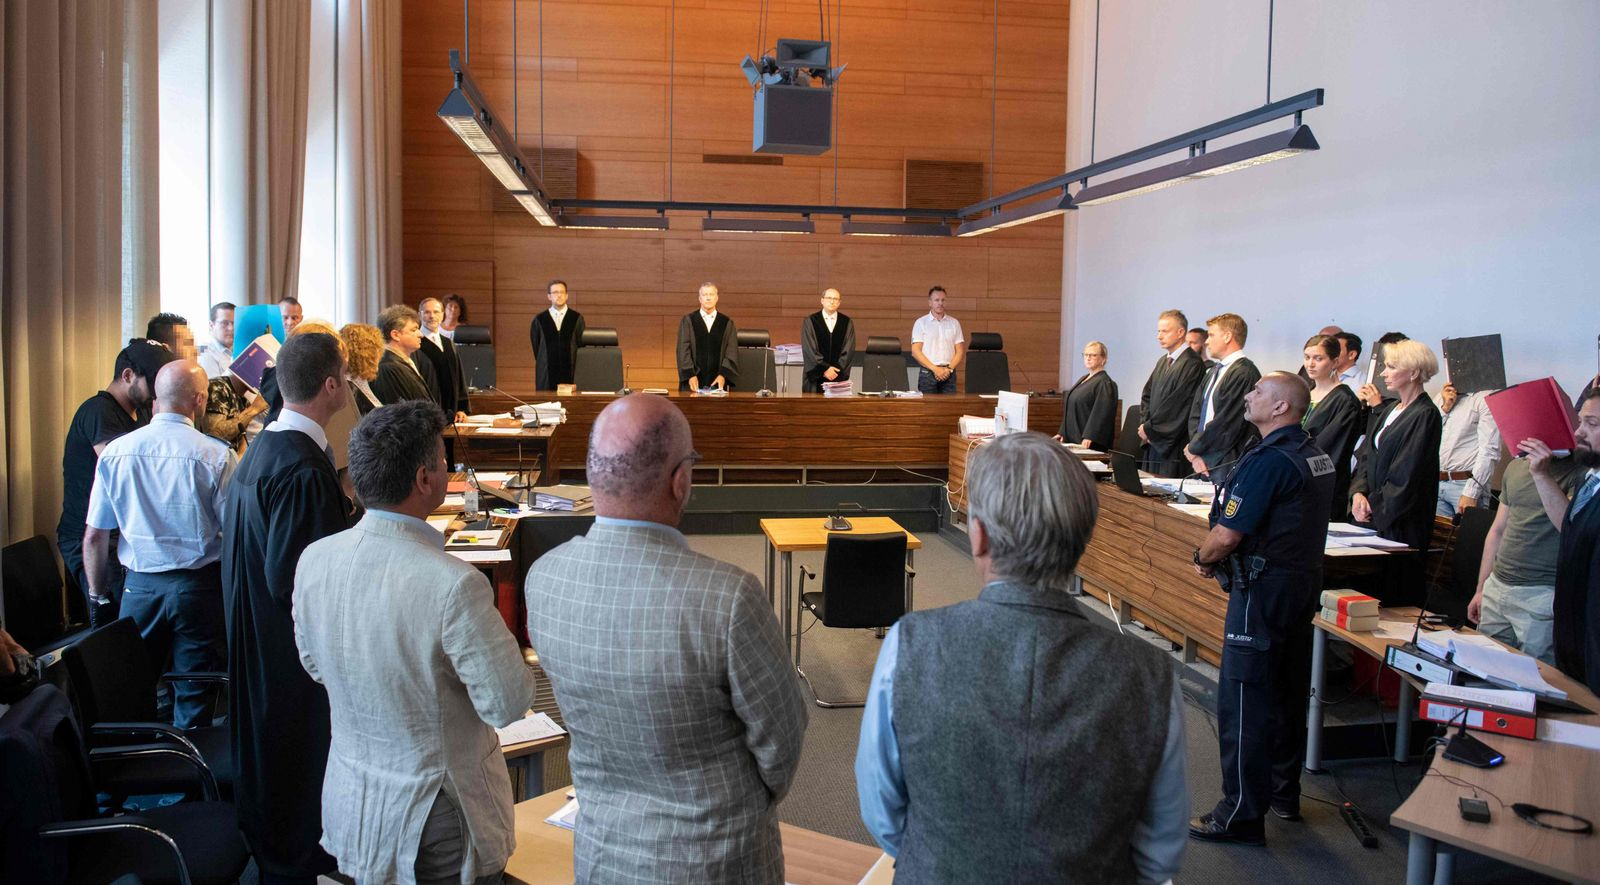 GERMANY-JUSTICE-TRIAL-CRIME